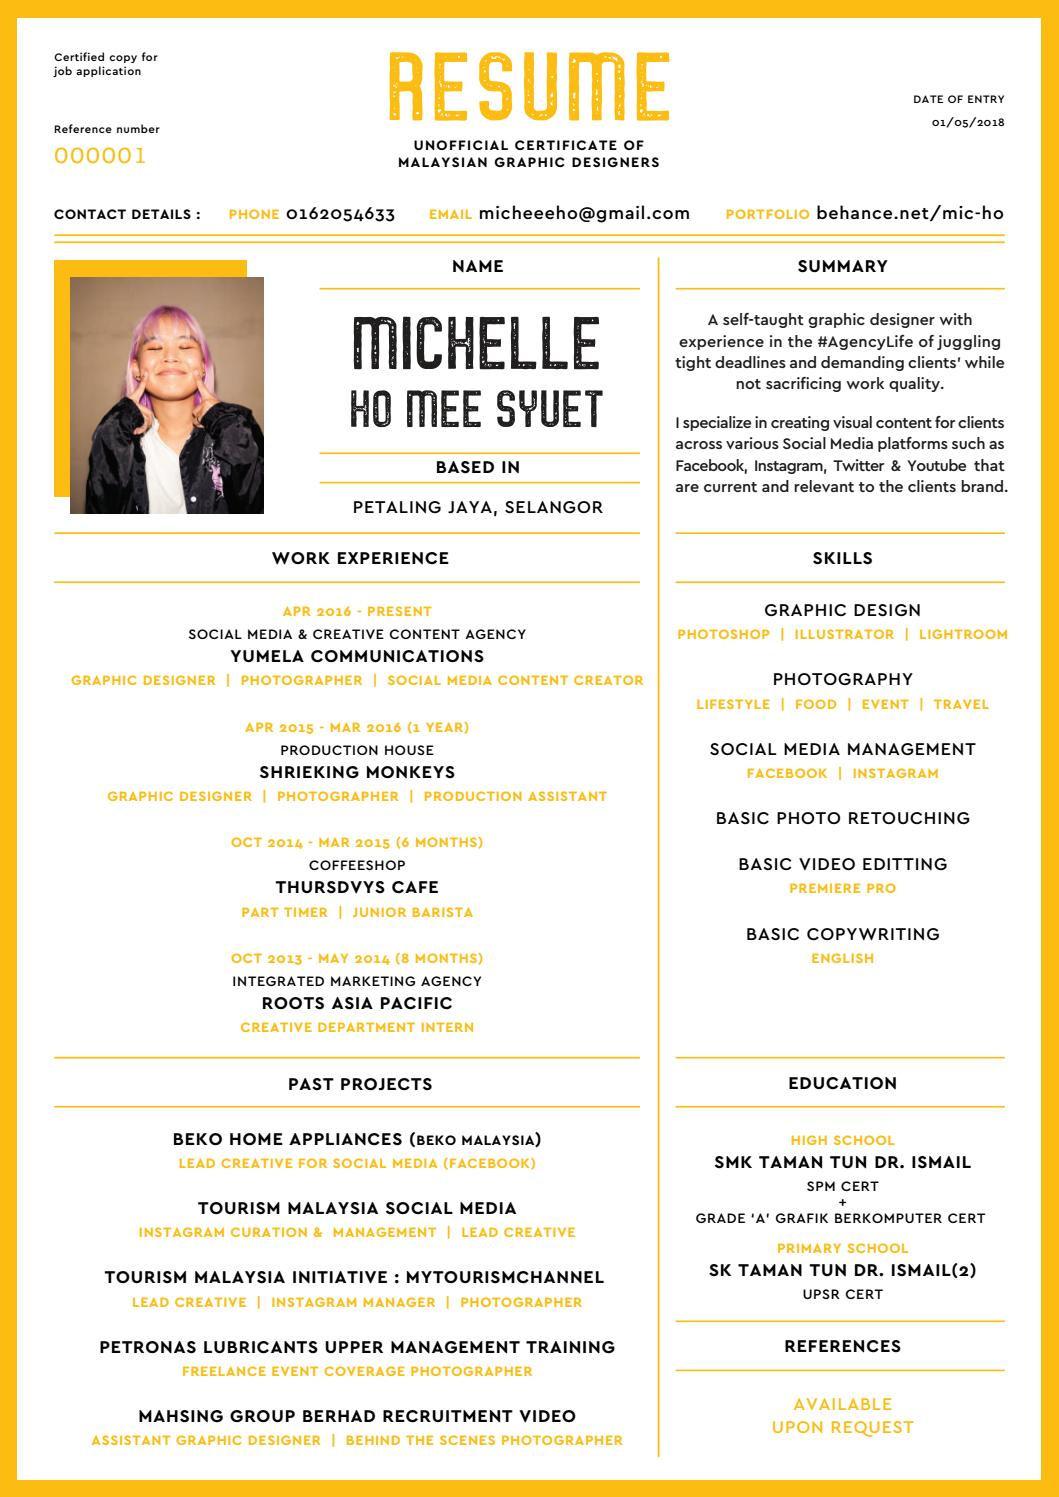 Michelle Ho Graphic Designer Resume 2018 By Micheeeho Issuu